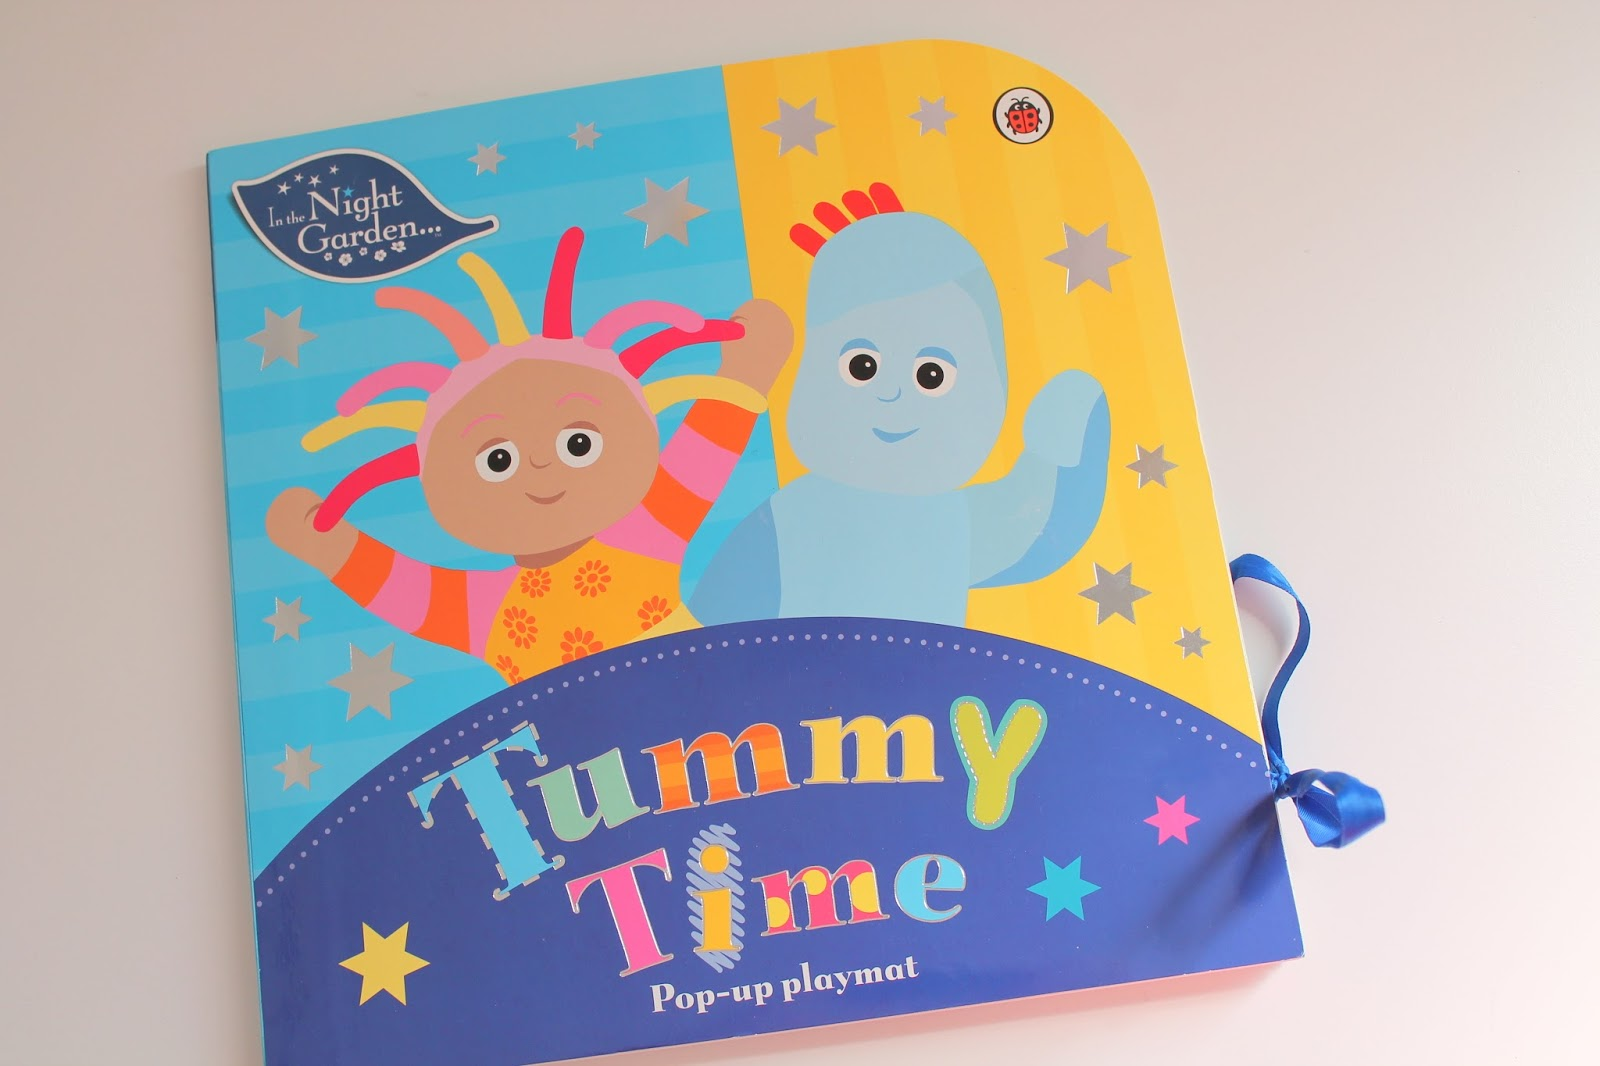 In The Night Garden Tummy Time book front cover